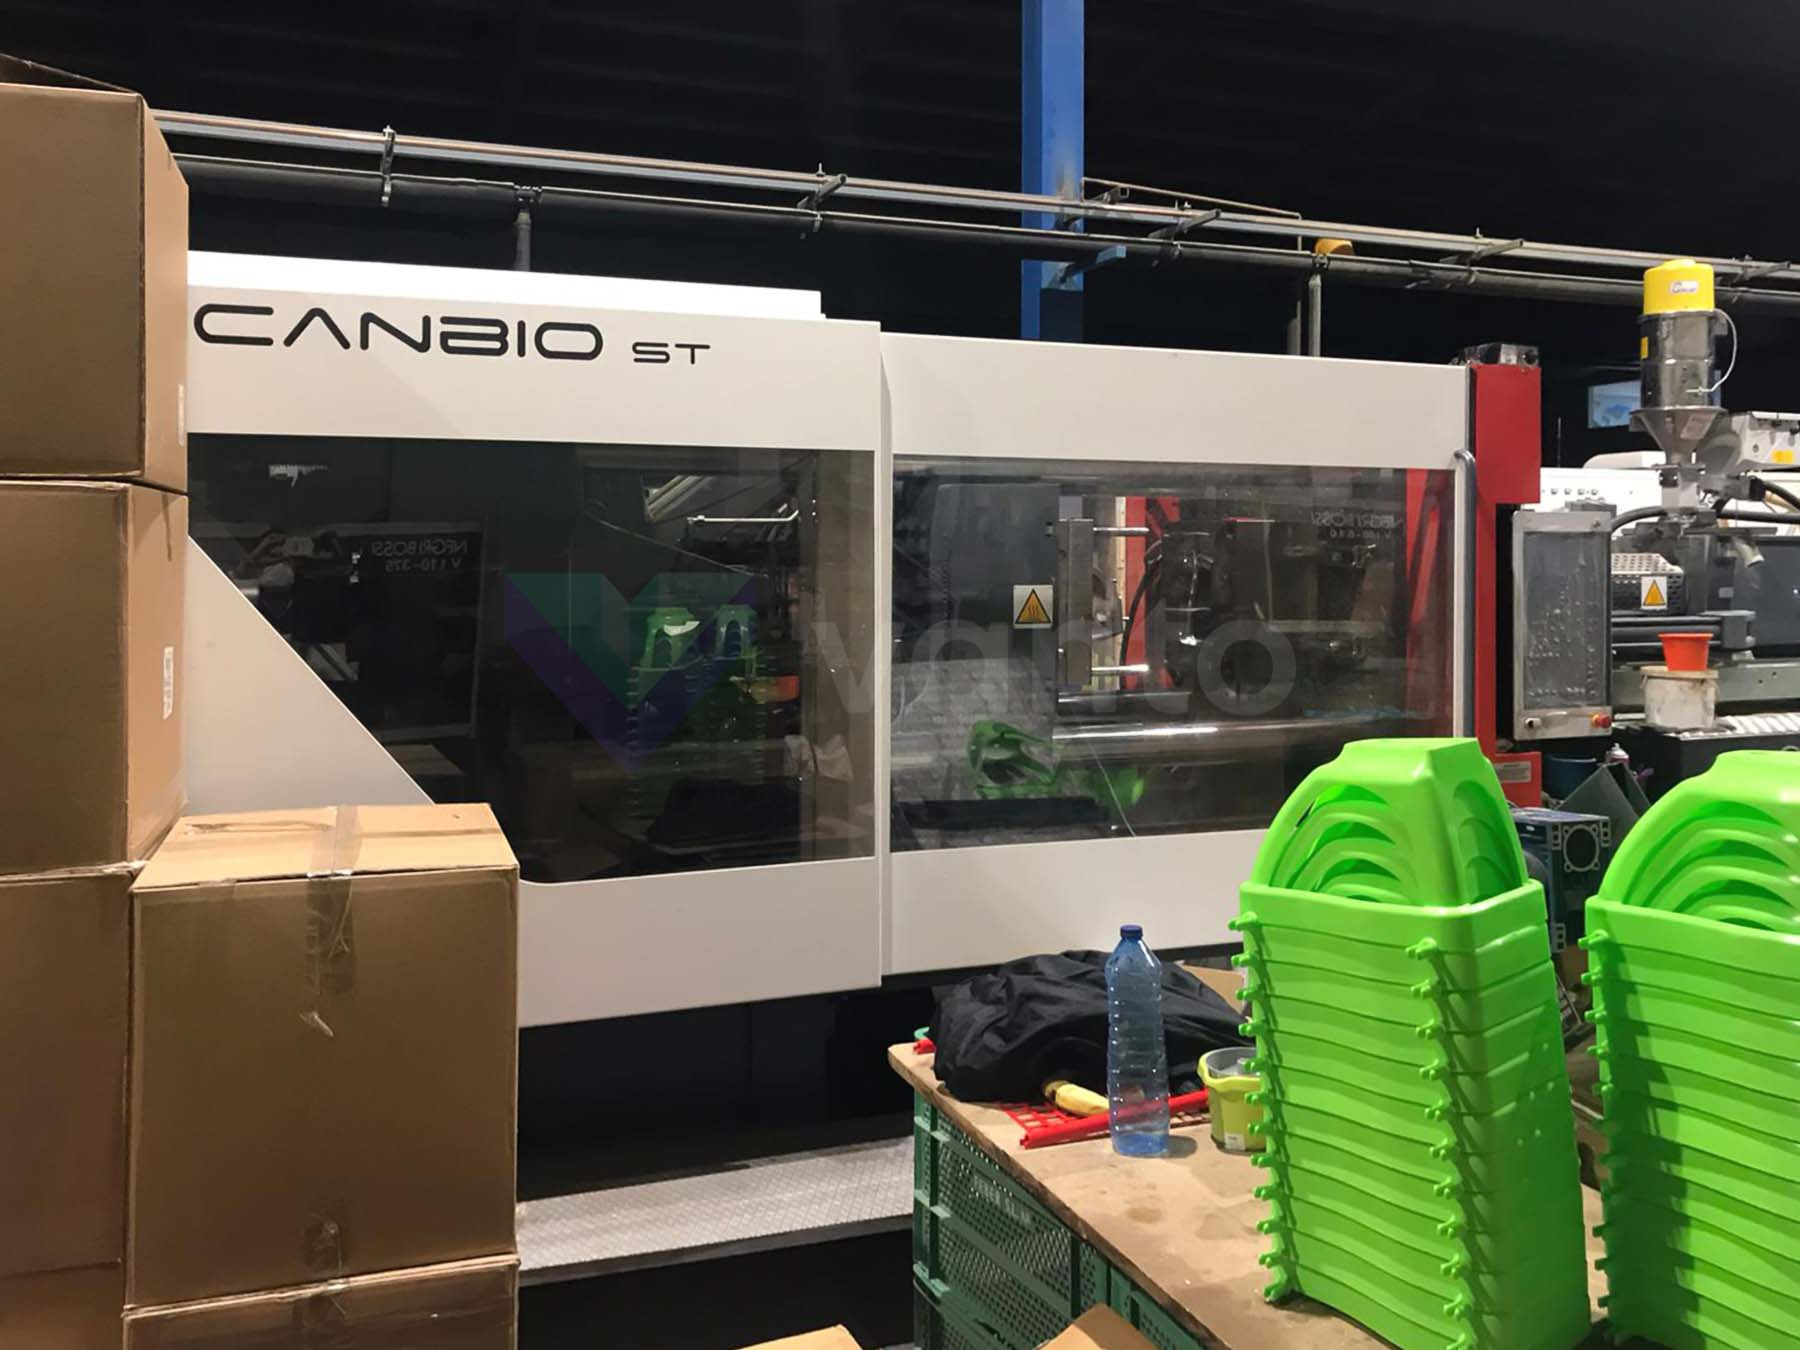 NEGRI BOSSI CANBIO ST 400 400t injection molding machine (2018) id10516